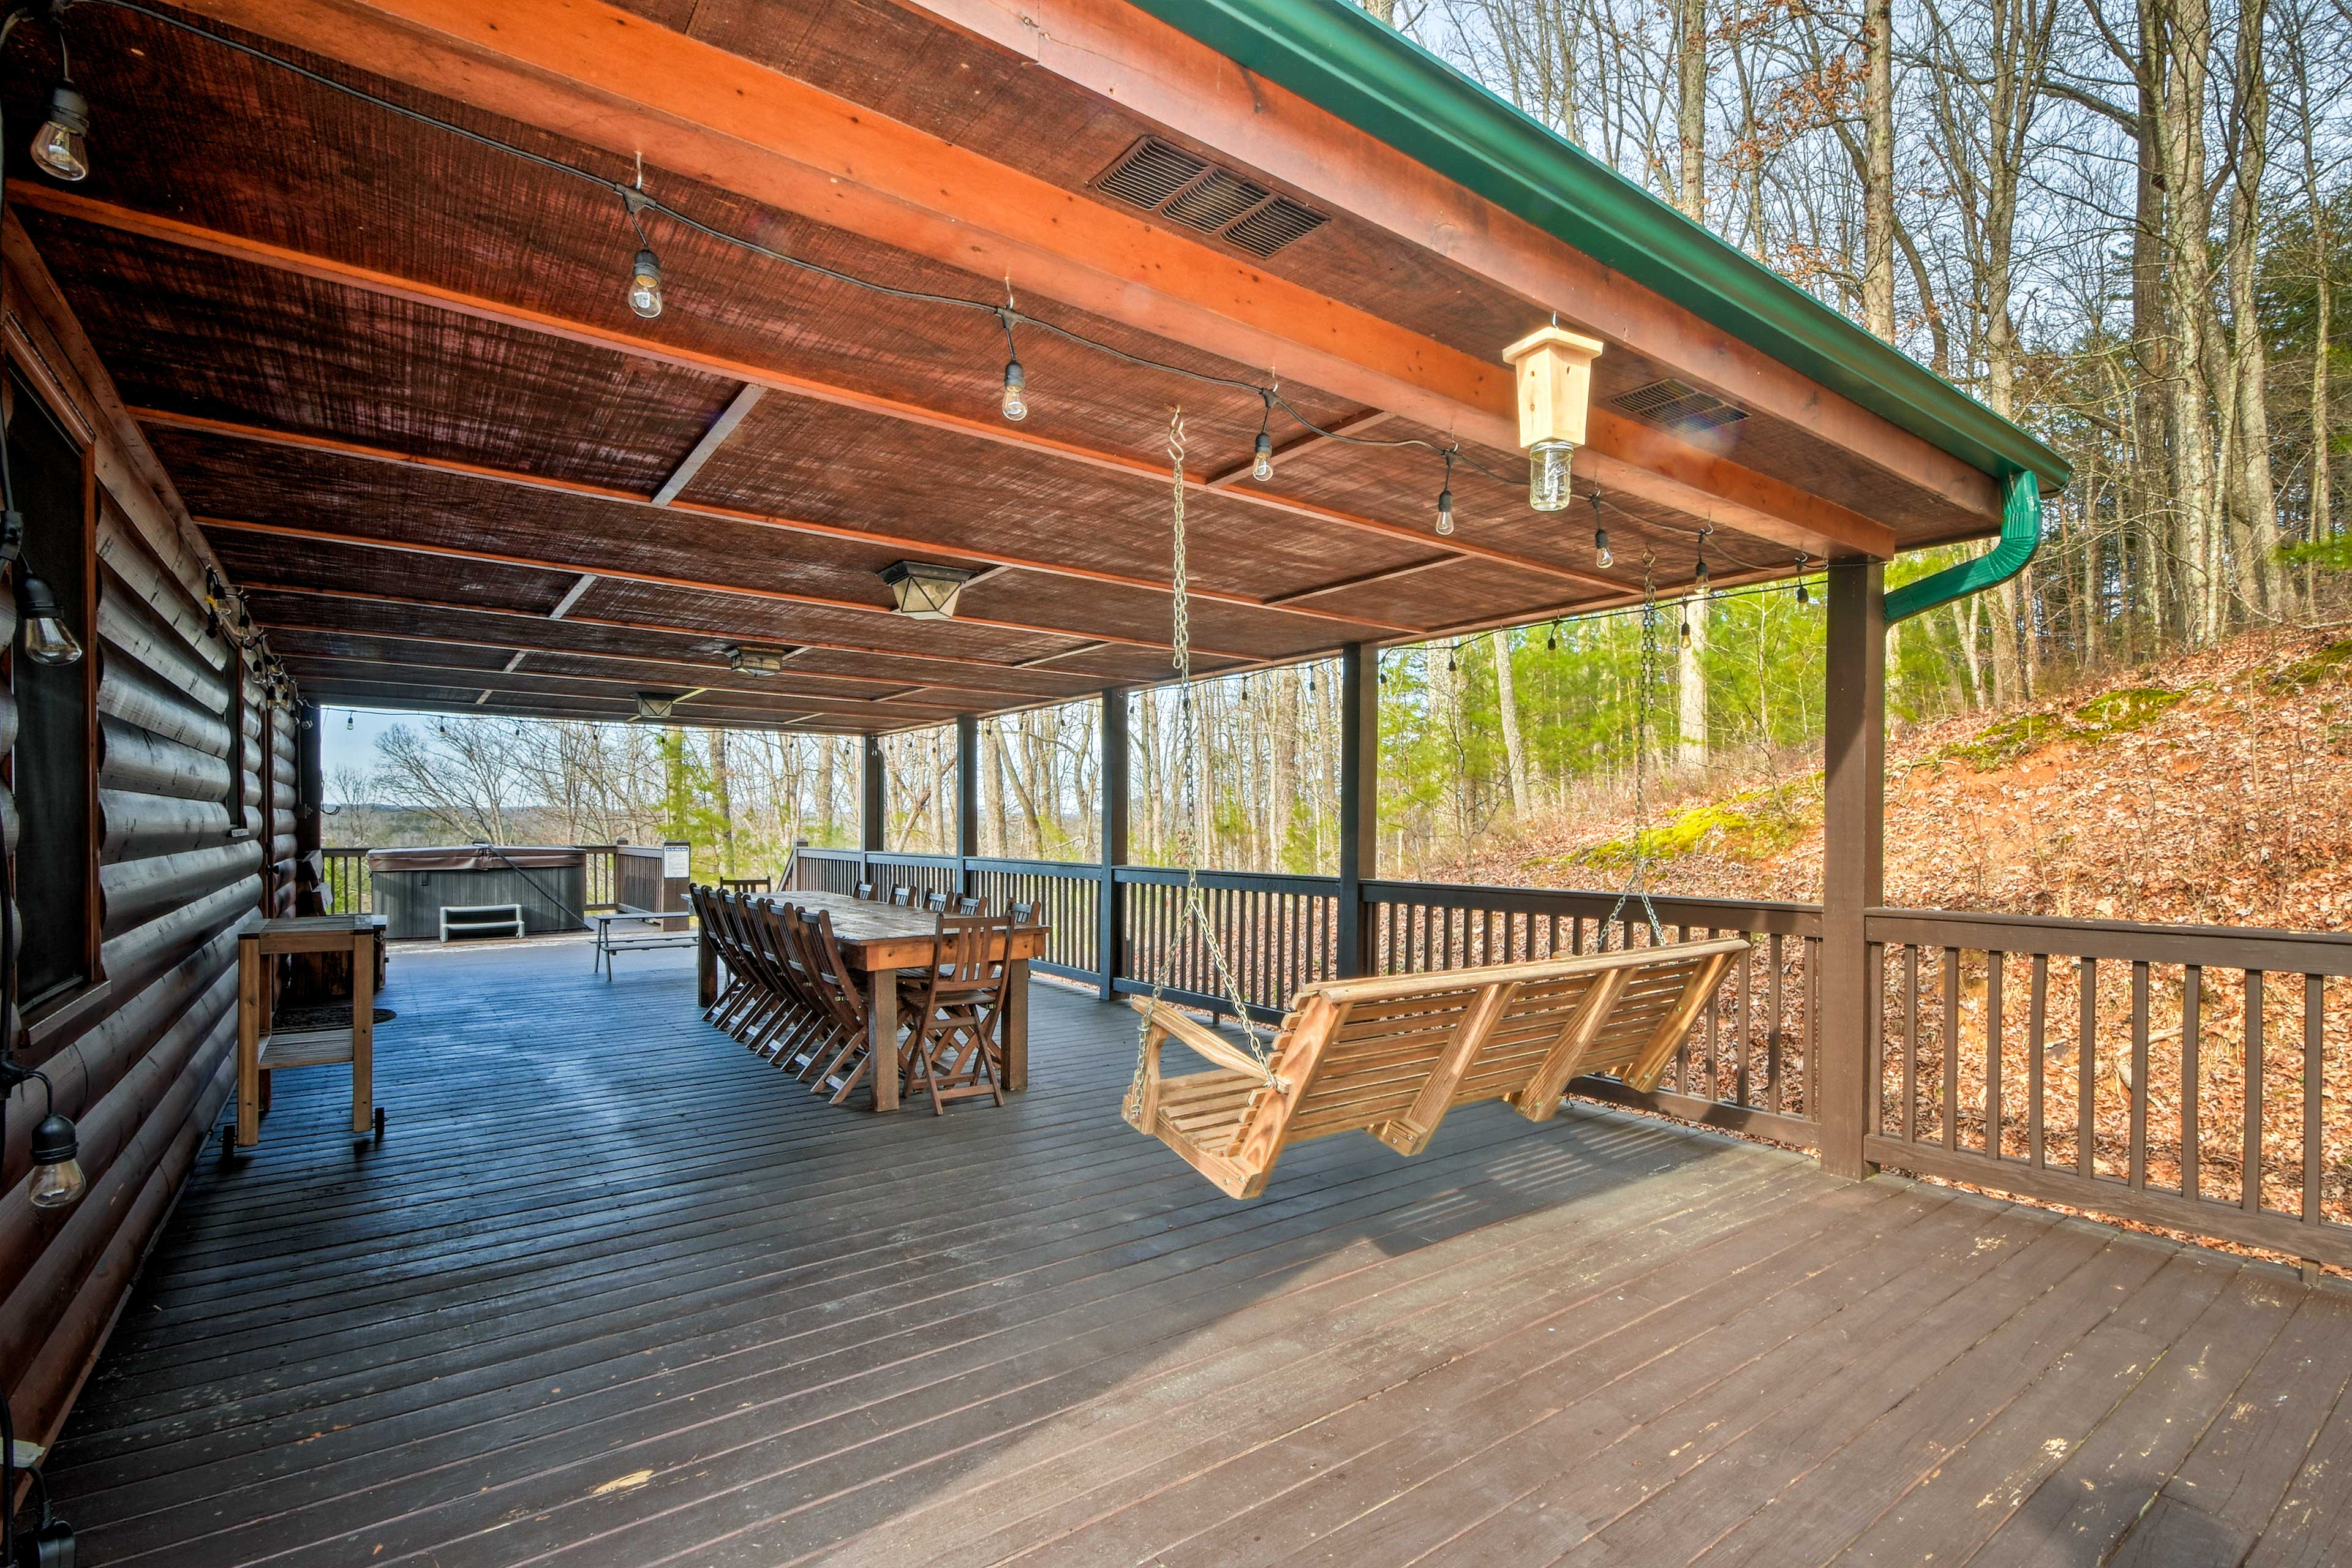 The deck boasts outdoor seating for everyone in addition to a wooden swing!